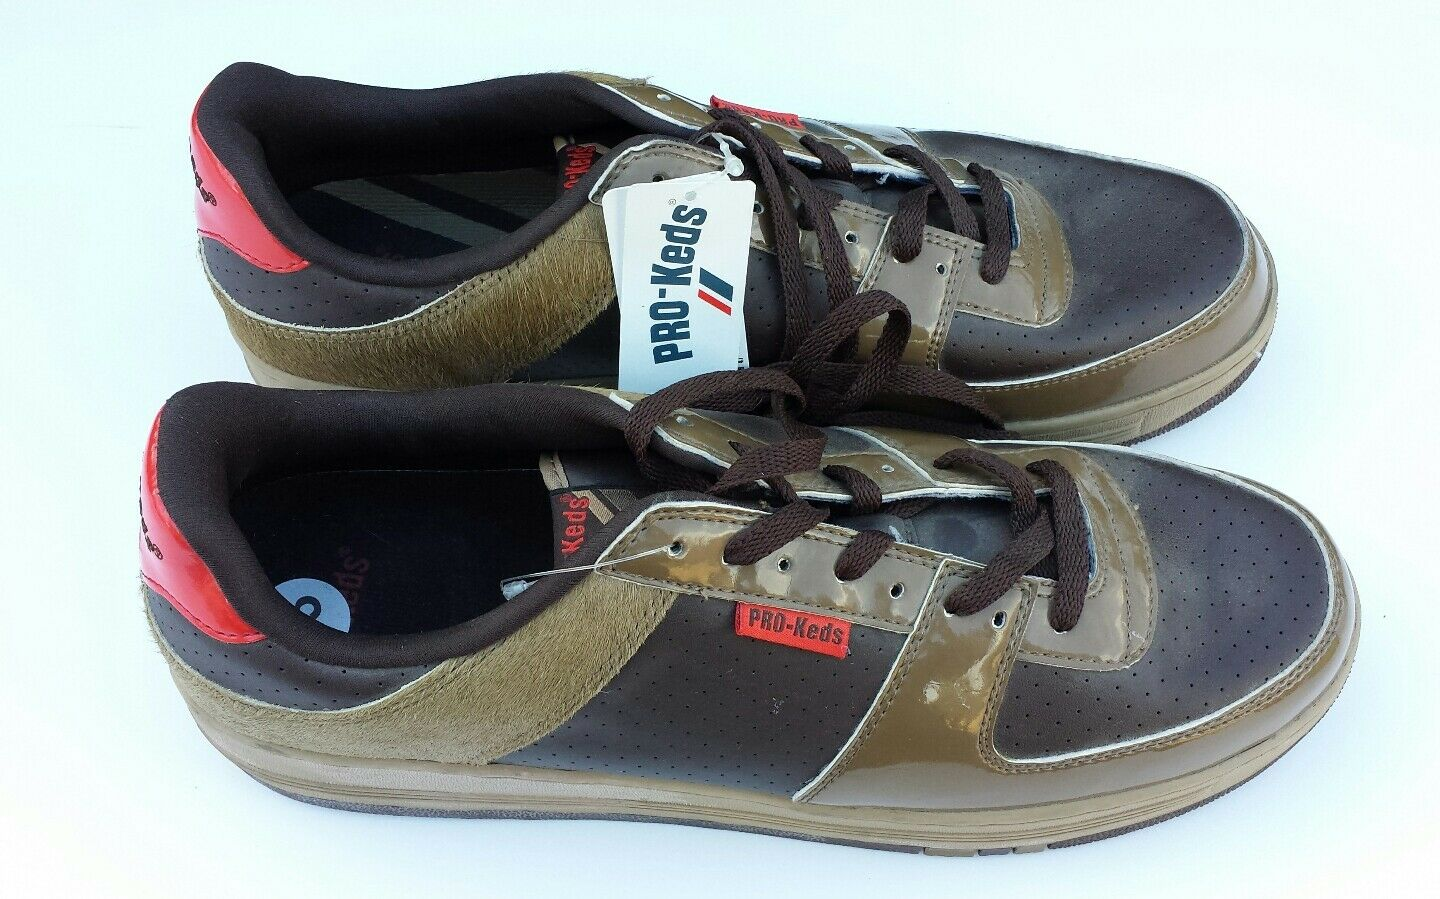 Pro Keds Skater Sneakers Calf Hair Streetwear Lace Up Mens Size 13 New